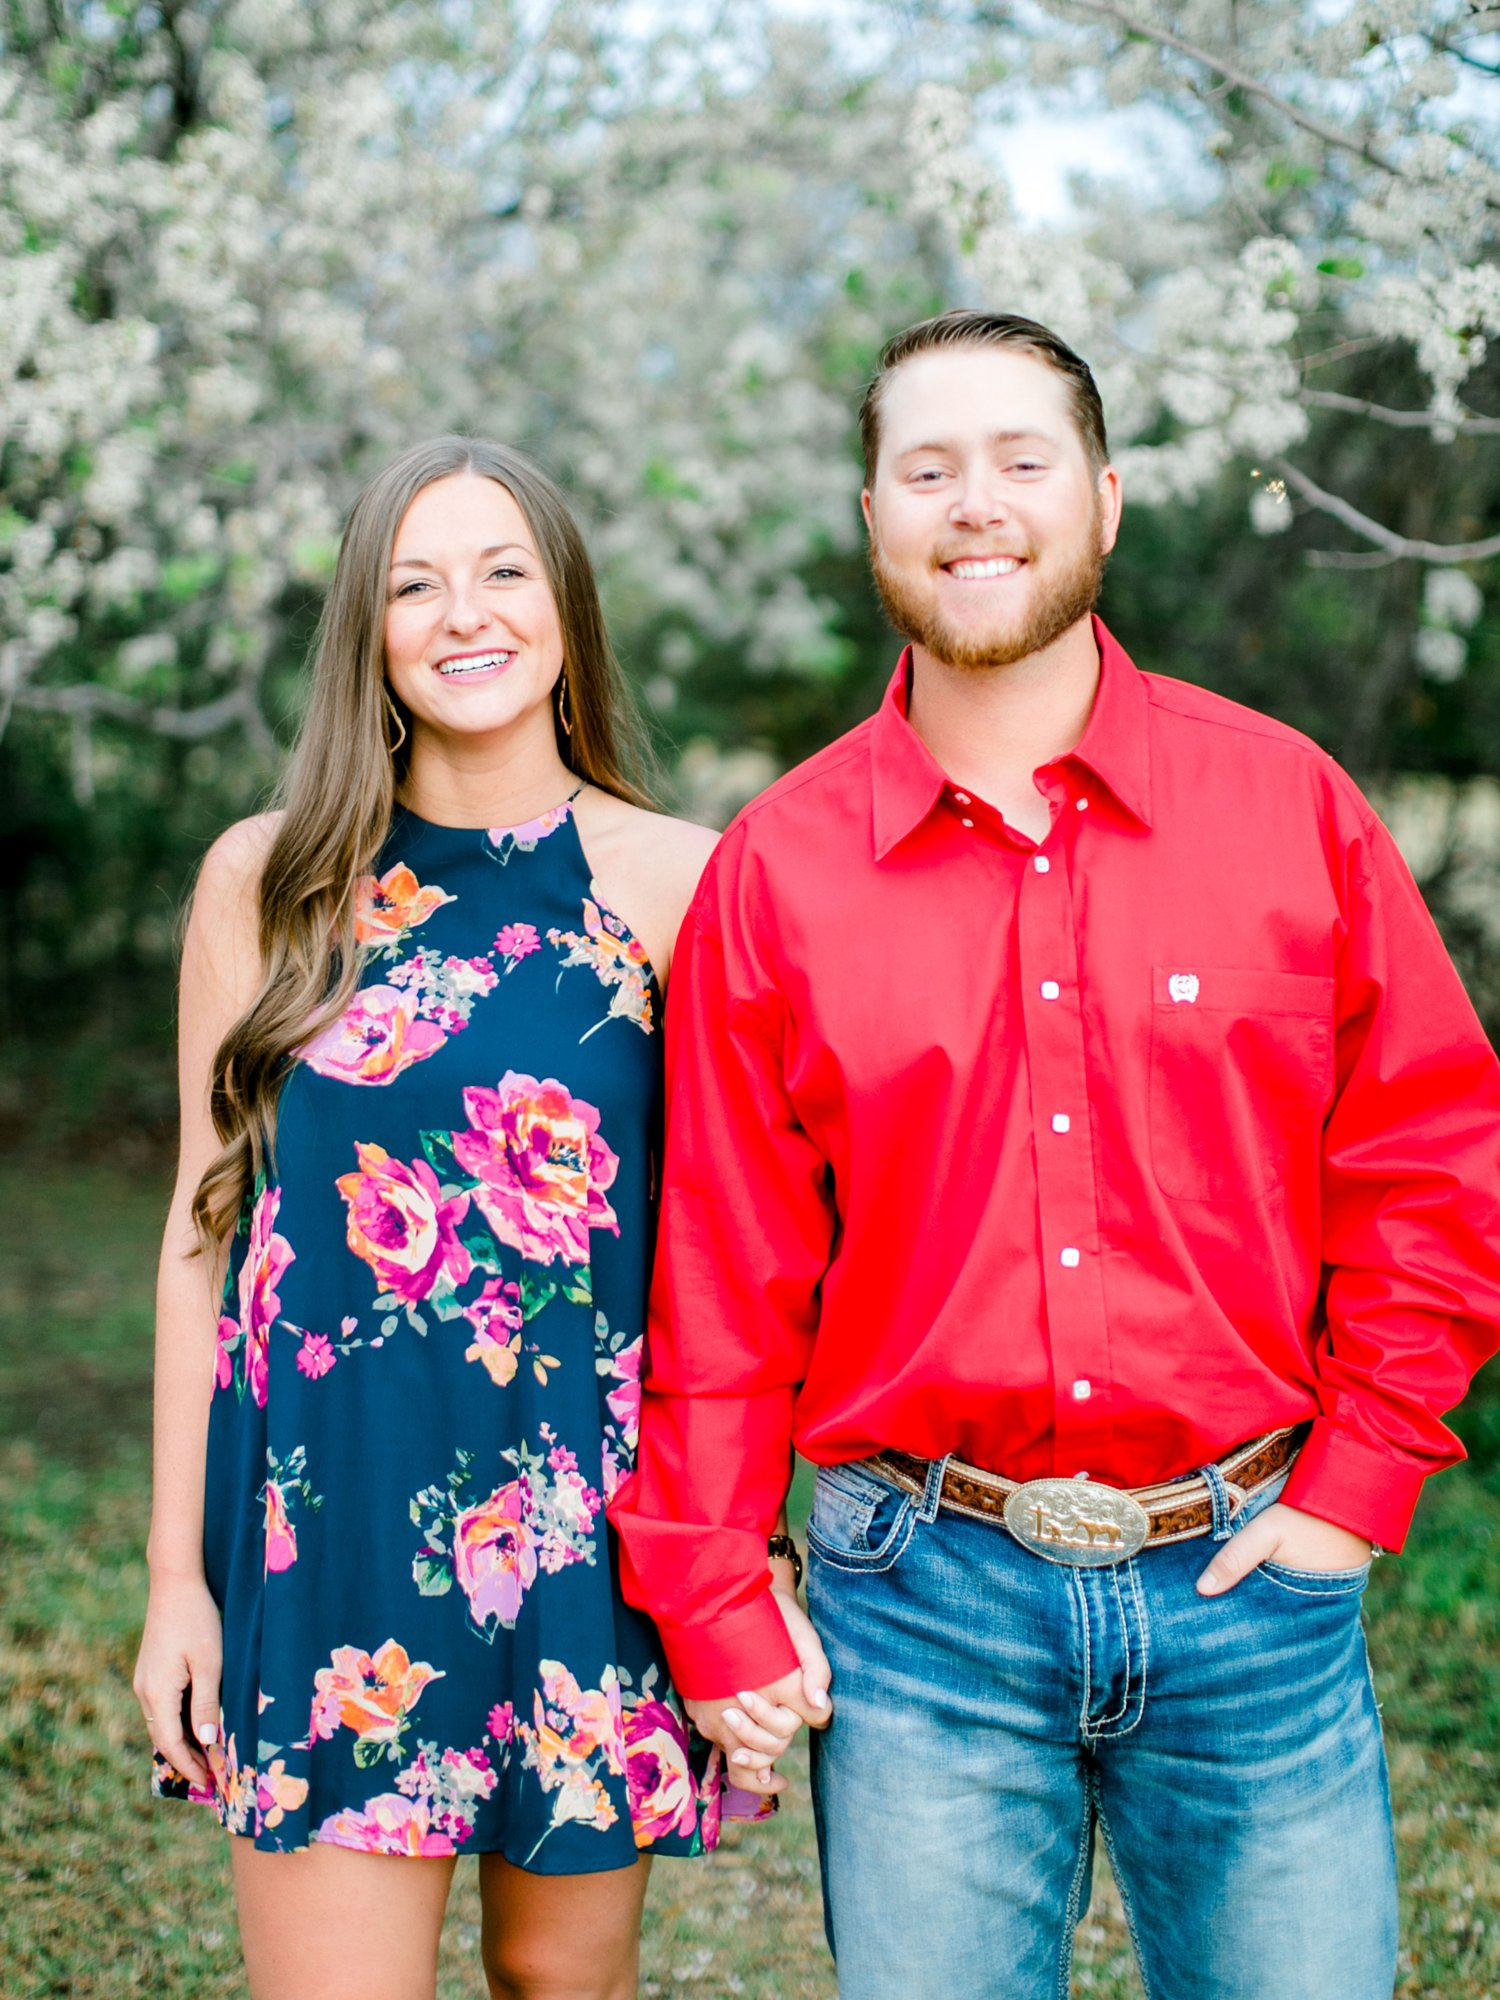 bailey-and-scotland-church-engagement-lubbock-photographer0004.jpg